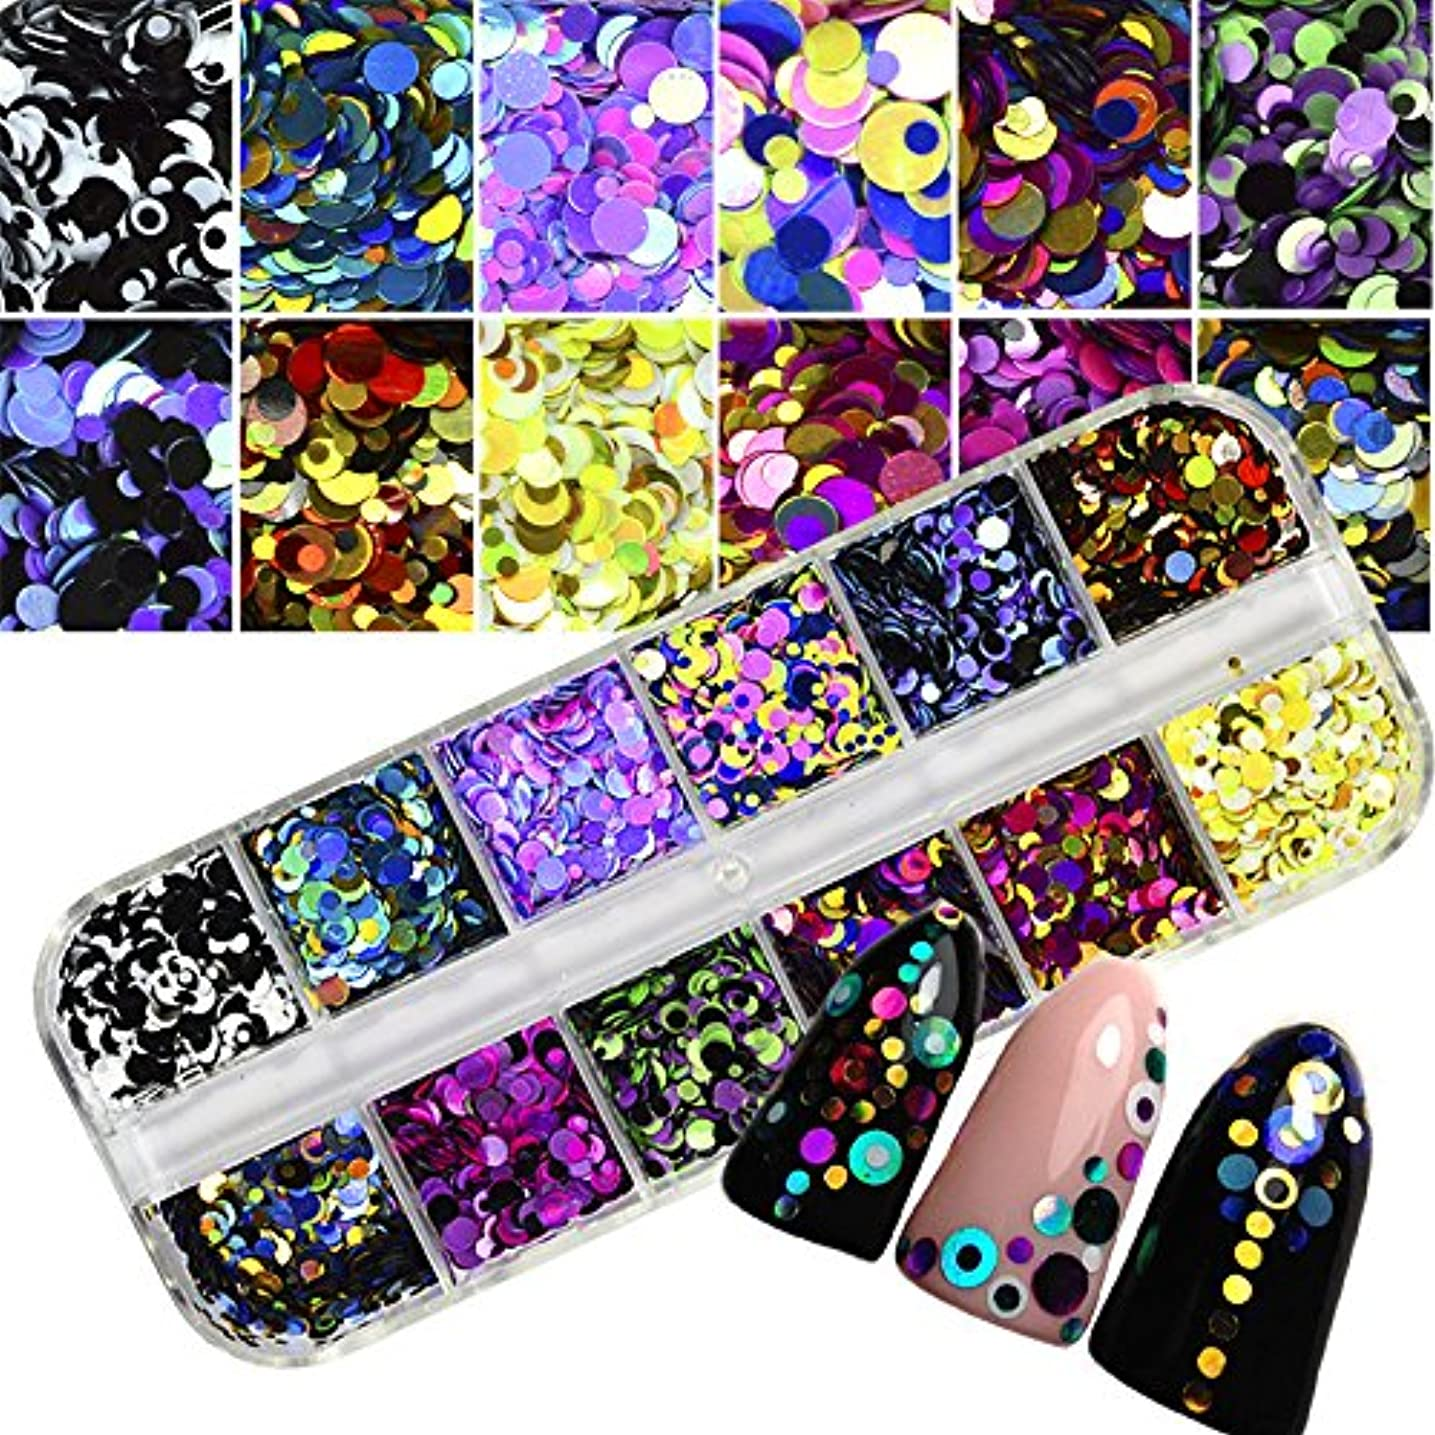 浸透するコックスナップ1 Set Dazzling Round Nail Glitter Sequins Dust Mixed 12 Grids 1/2/3mm DIY Charm Polish Flakes Decorations Manicure...